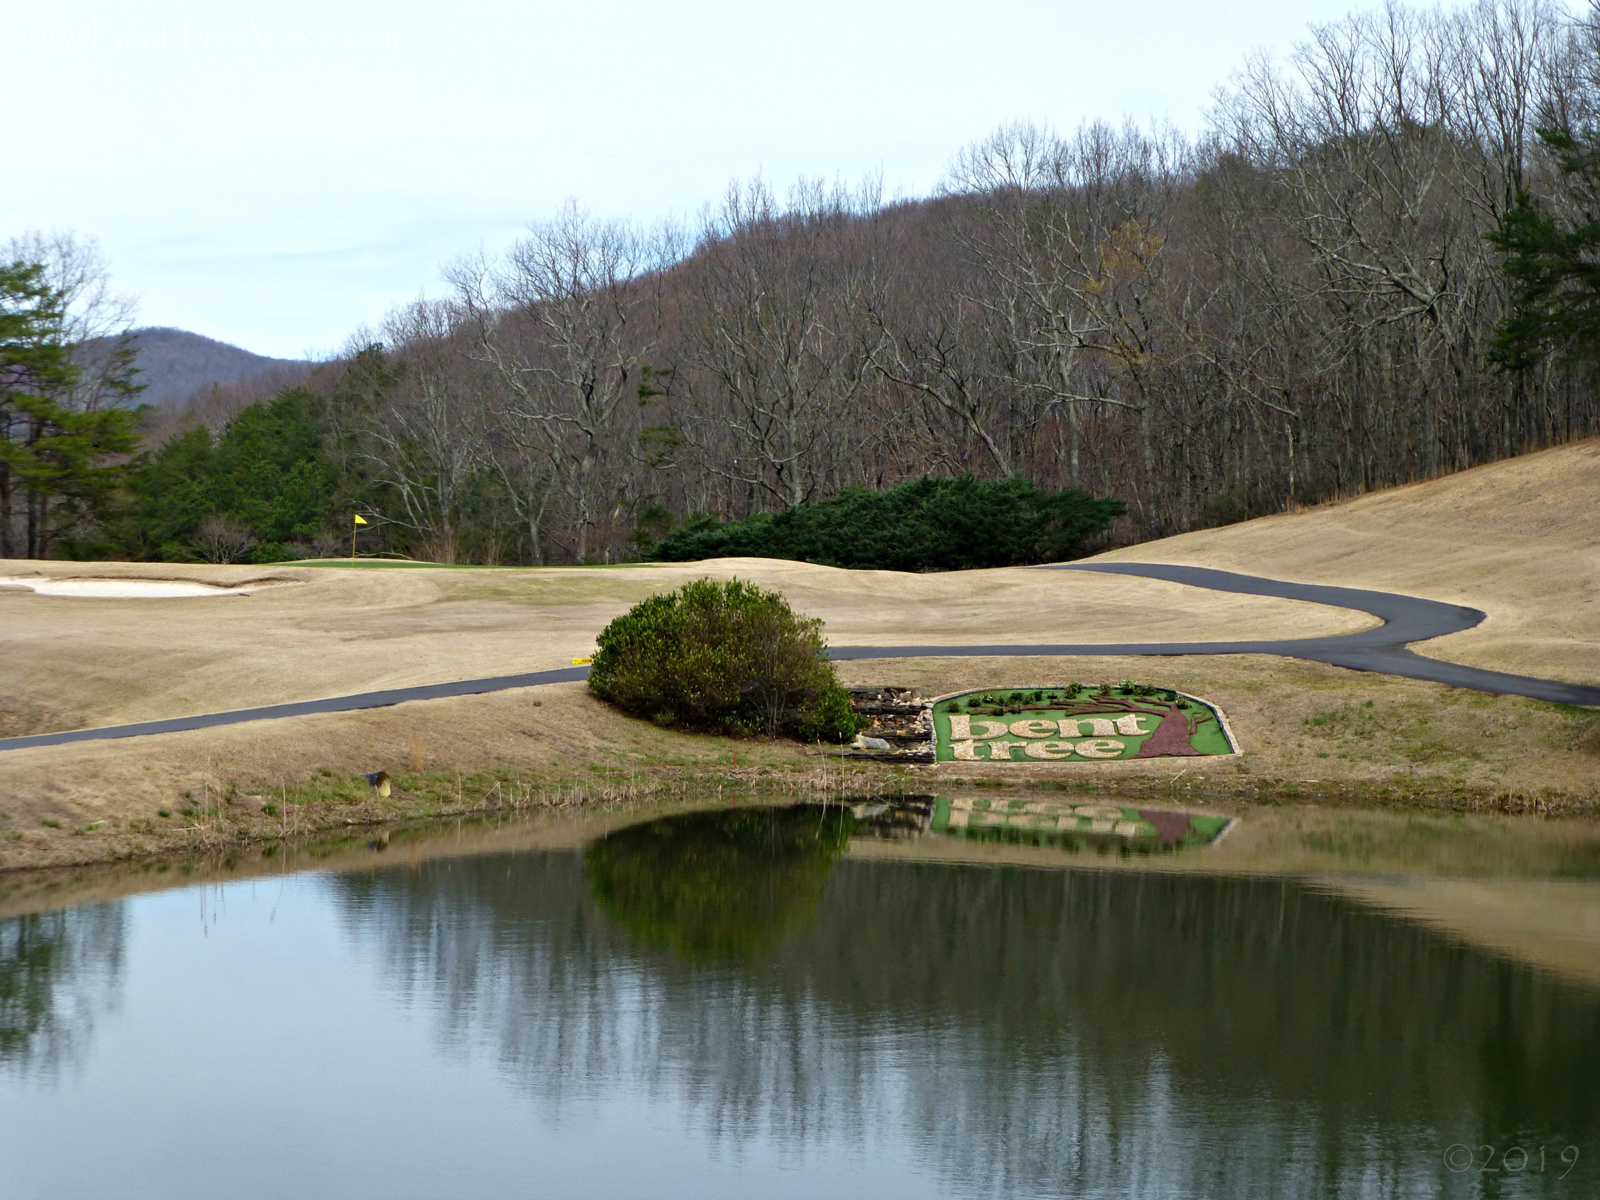 March 2, 2019 - Signature Hole #7, Bent Tree Golf Club